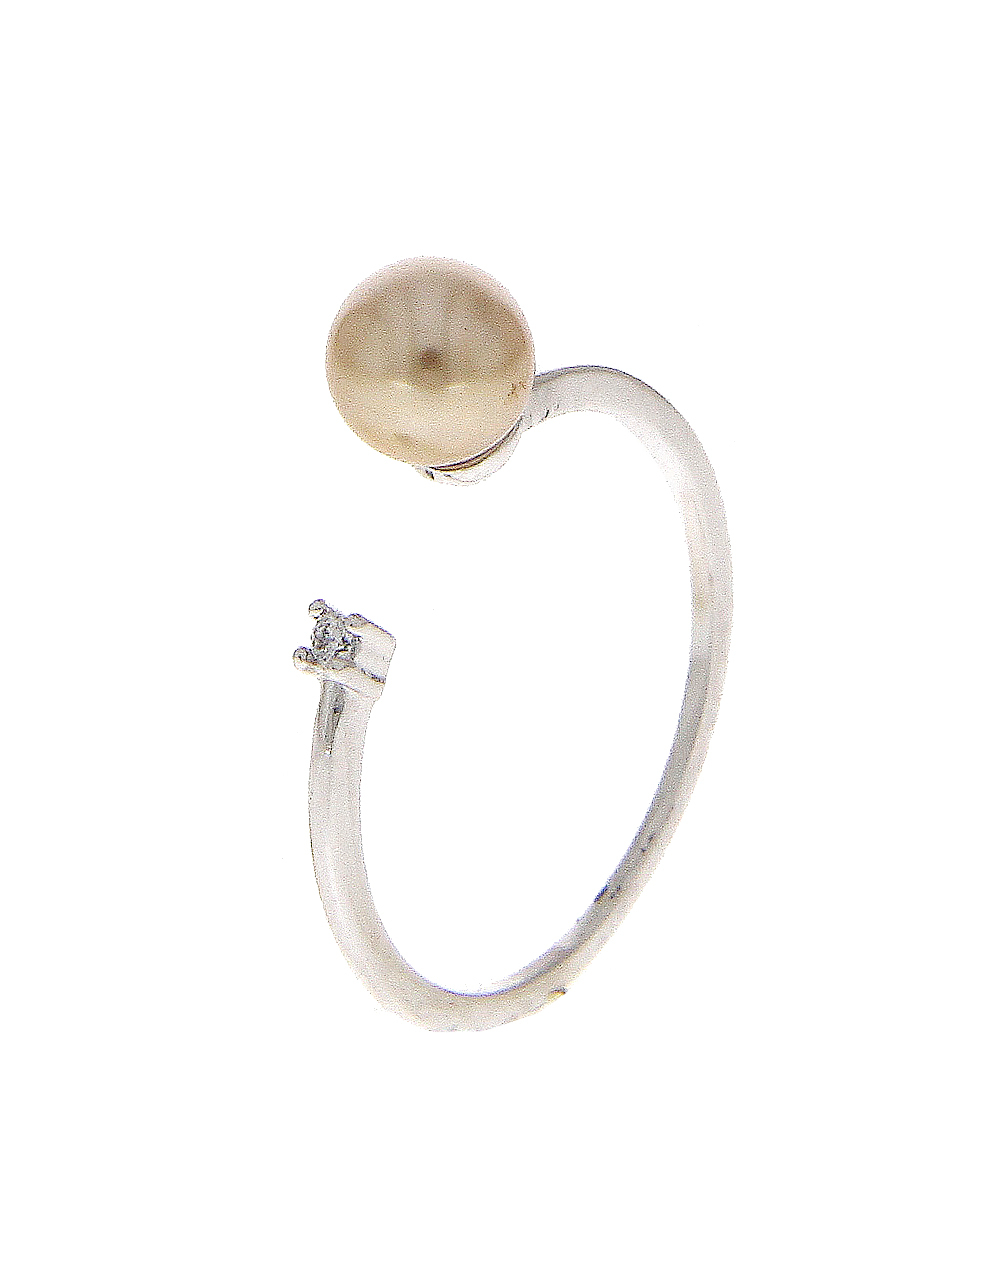 Silver Tone Fashionable Adjustable Finger Ring